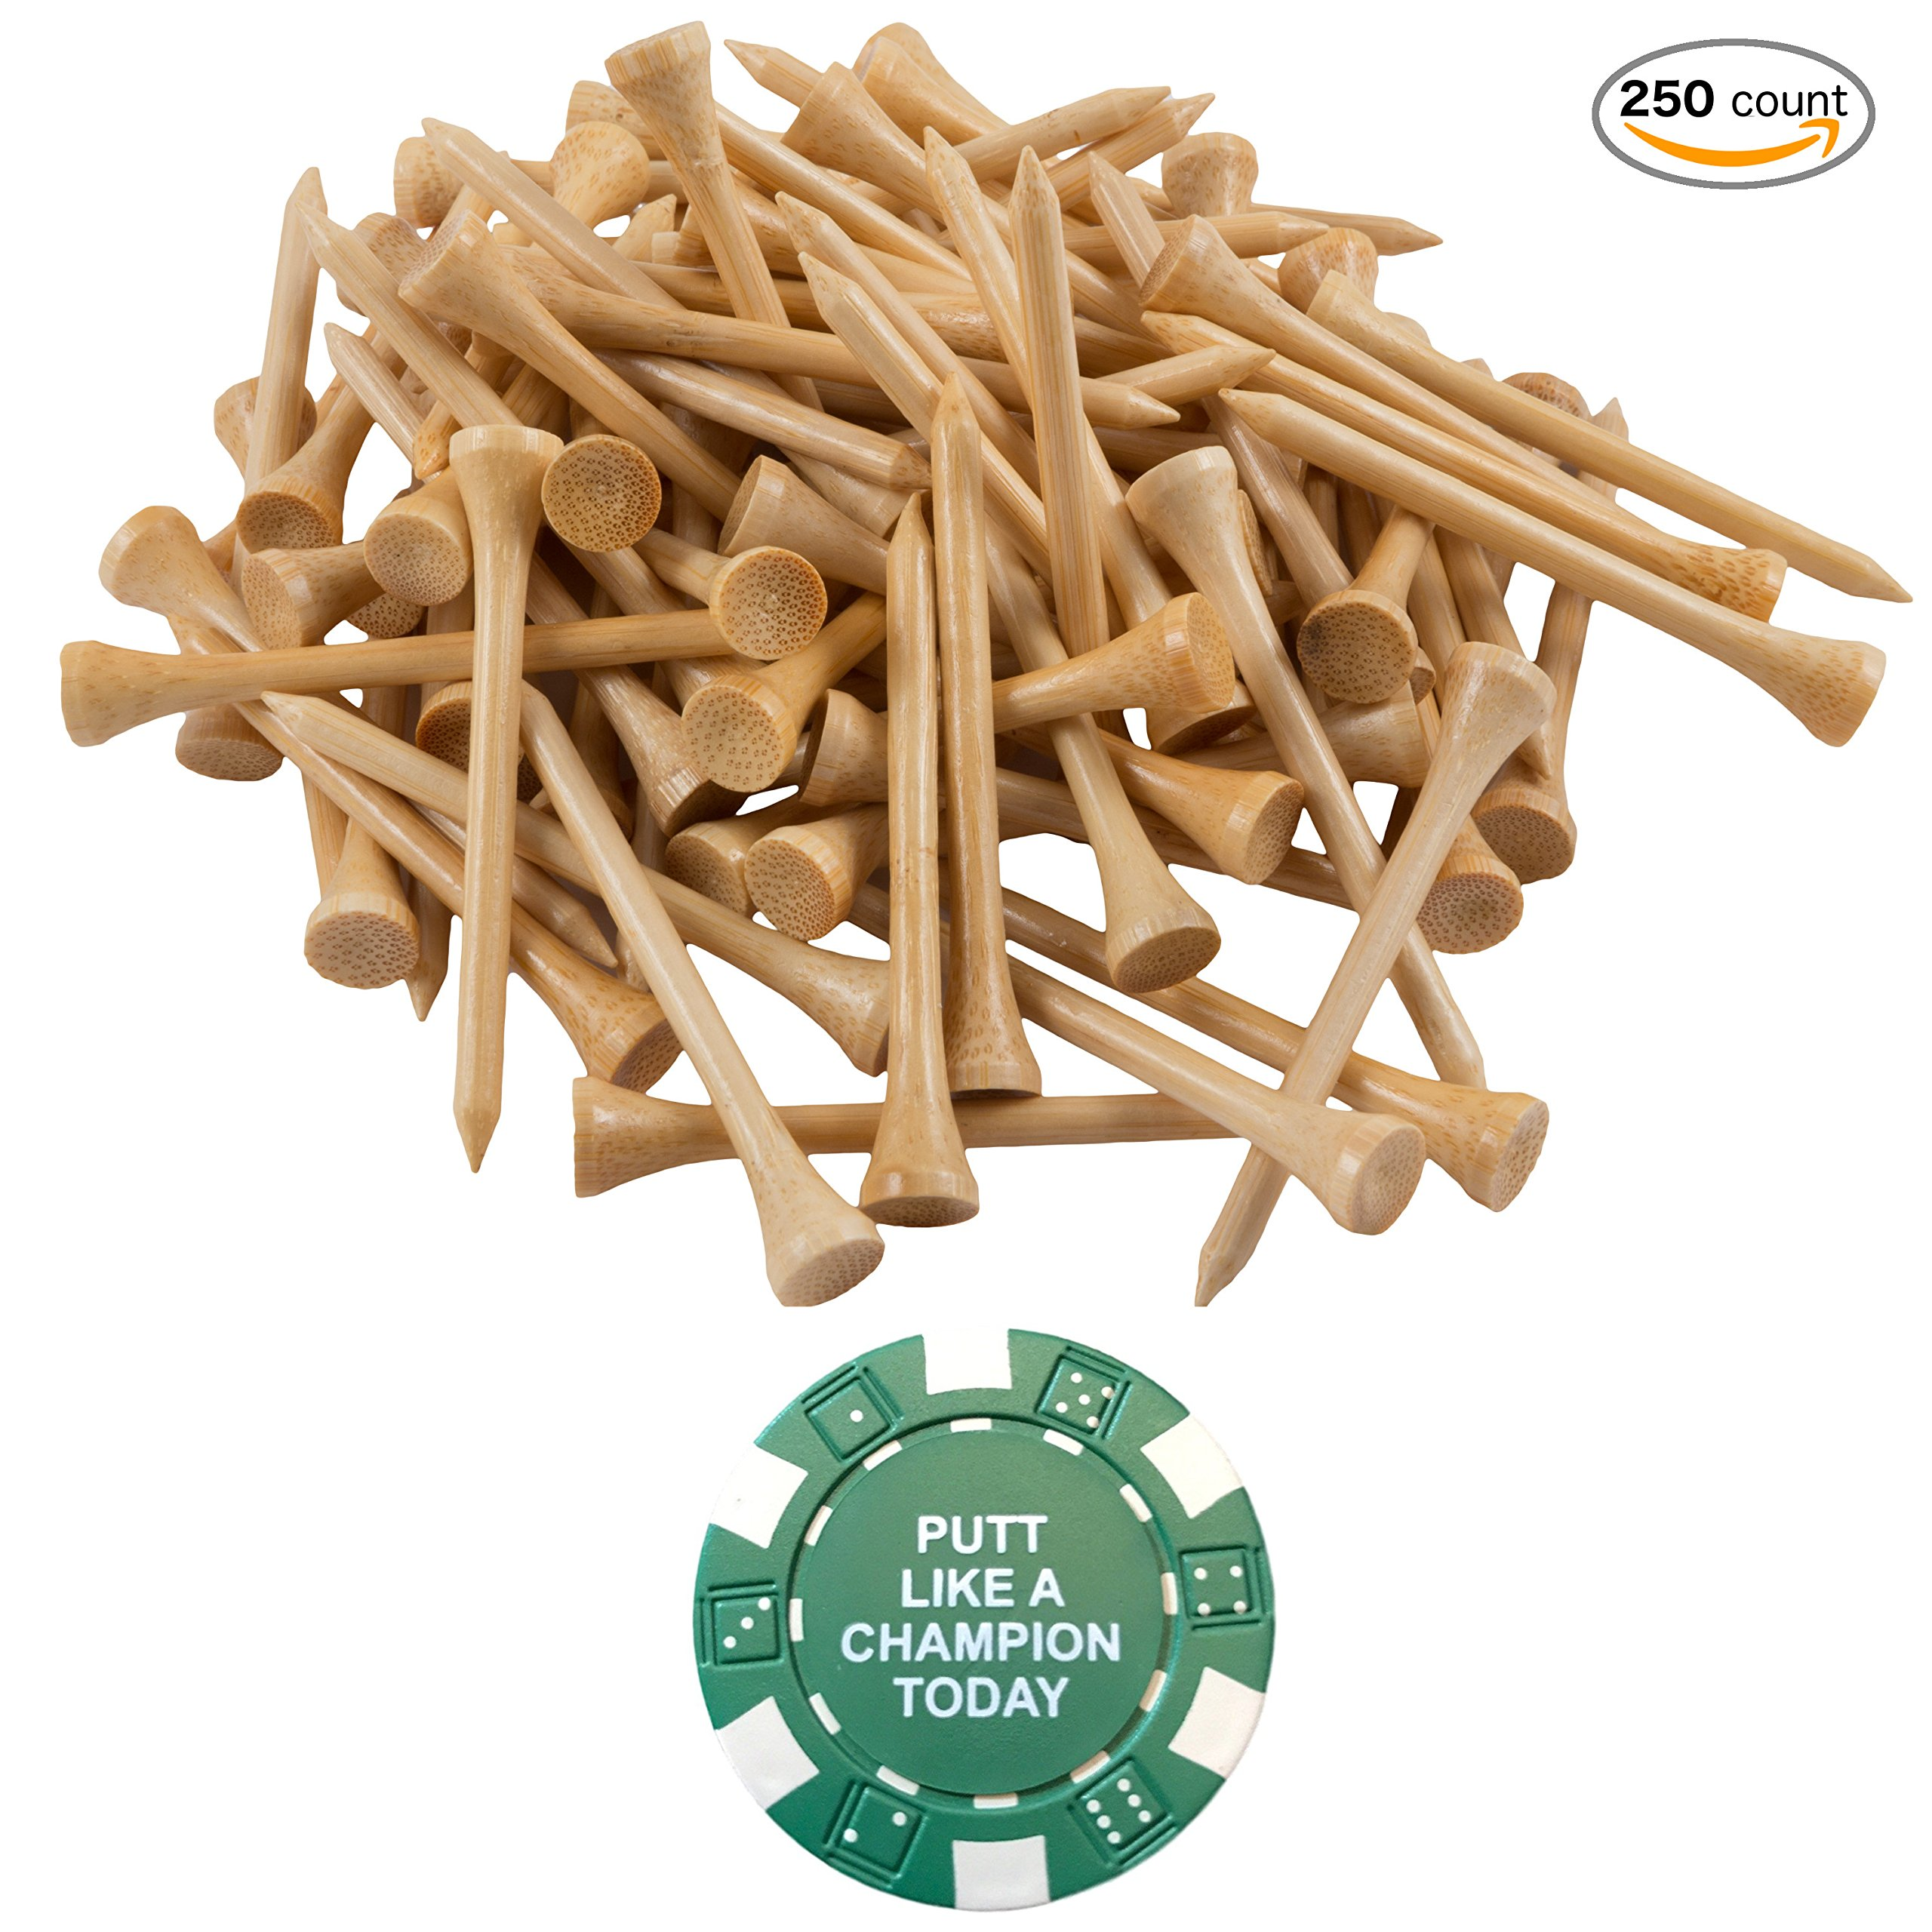 Wedge Guys 250 Count Professional Bamboo Golf Tees 2-3/4 inch - Free Poker Chip Ball Marker - Stronger Than Wood Tees Biodegradable & Less Friction PGA Approved by Wedge Guys